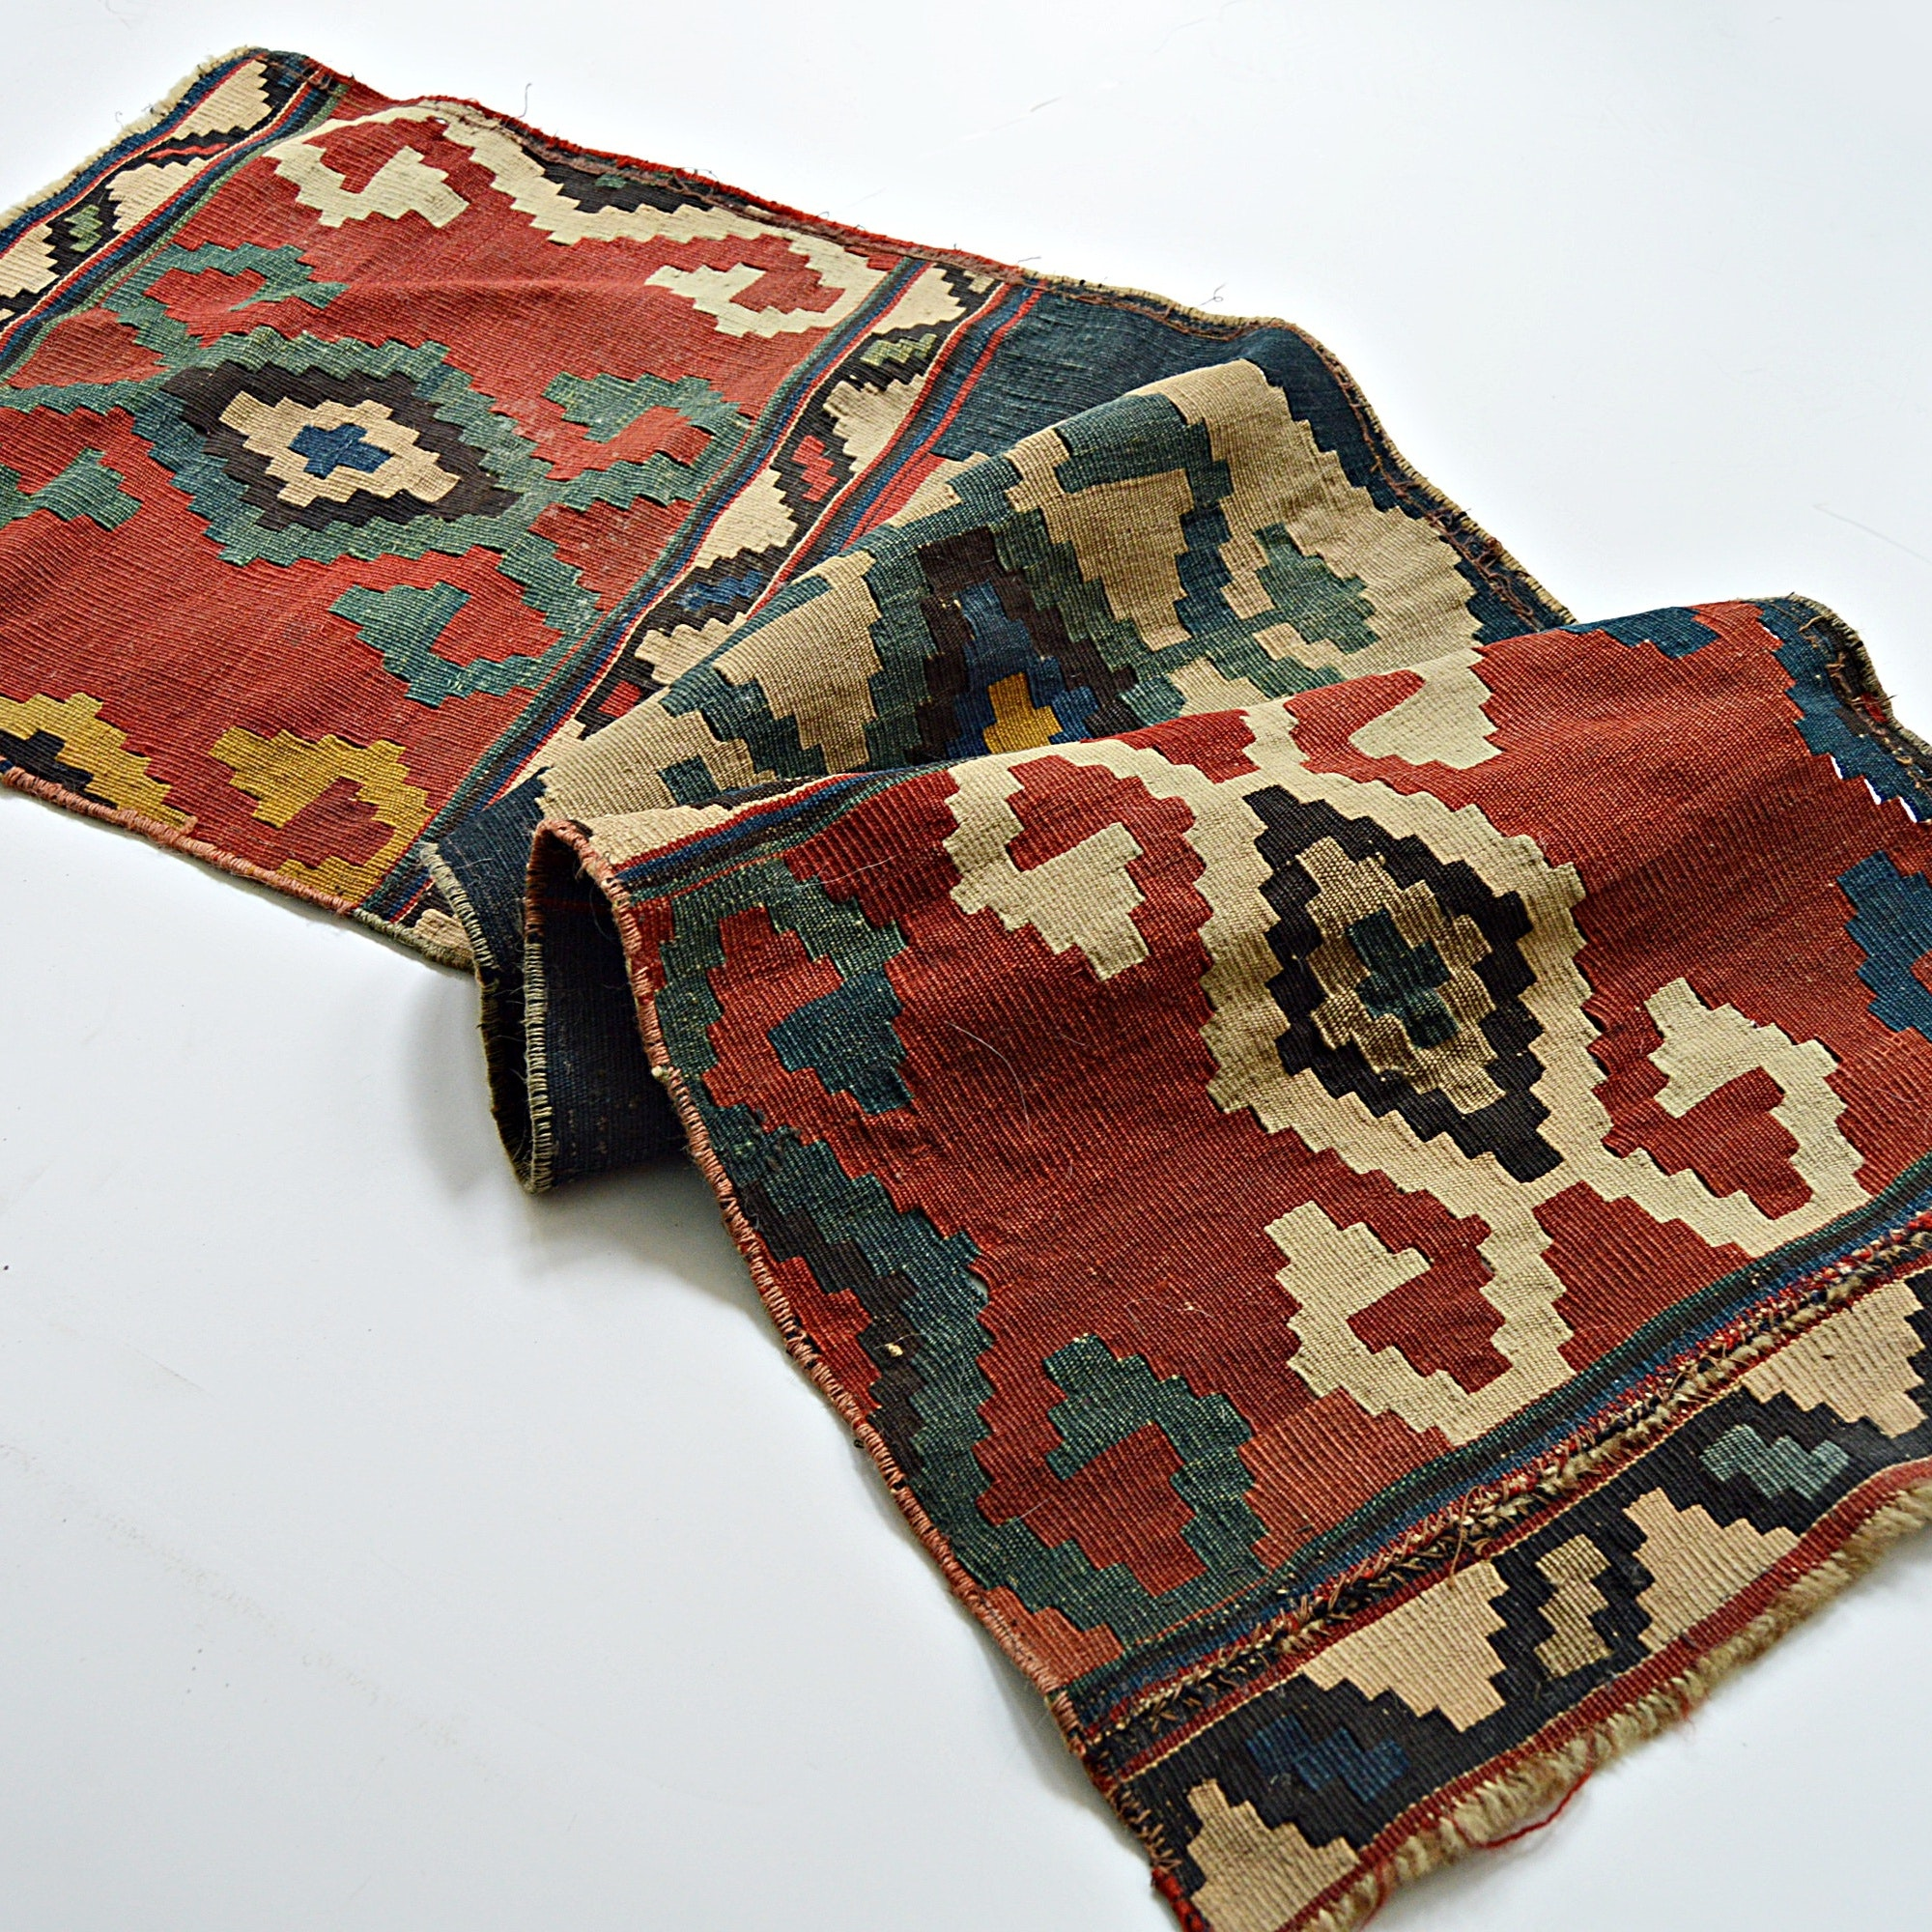 Vintage to Semi-Antique Hand-Knotted Anatolian Wool Kilim Rug